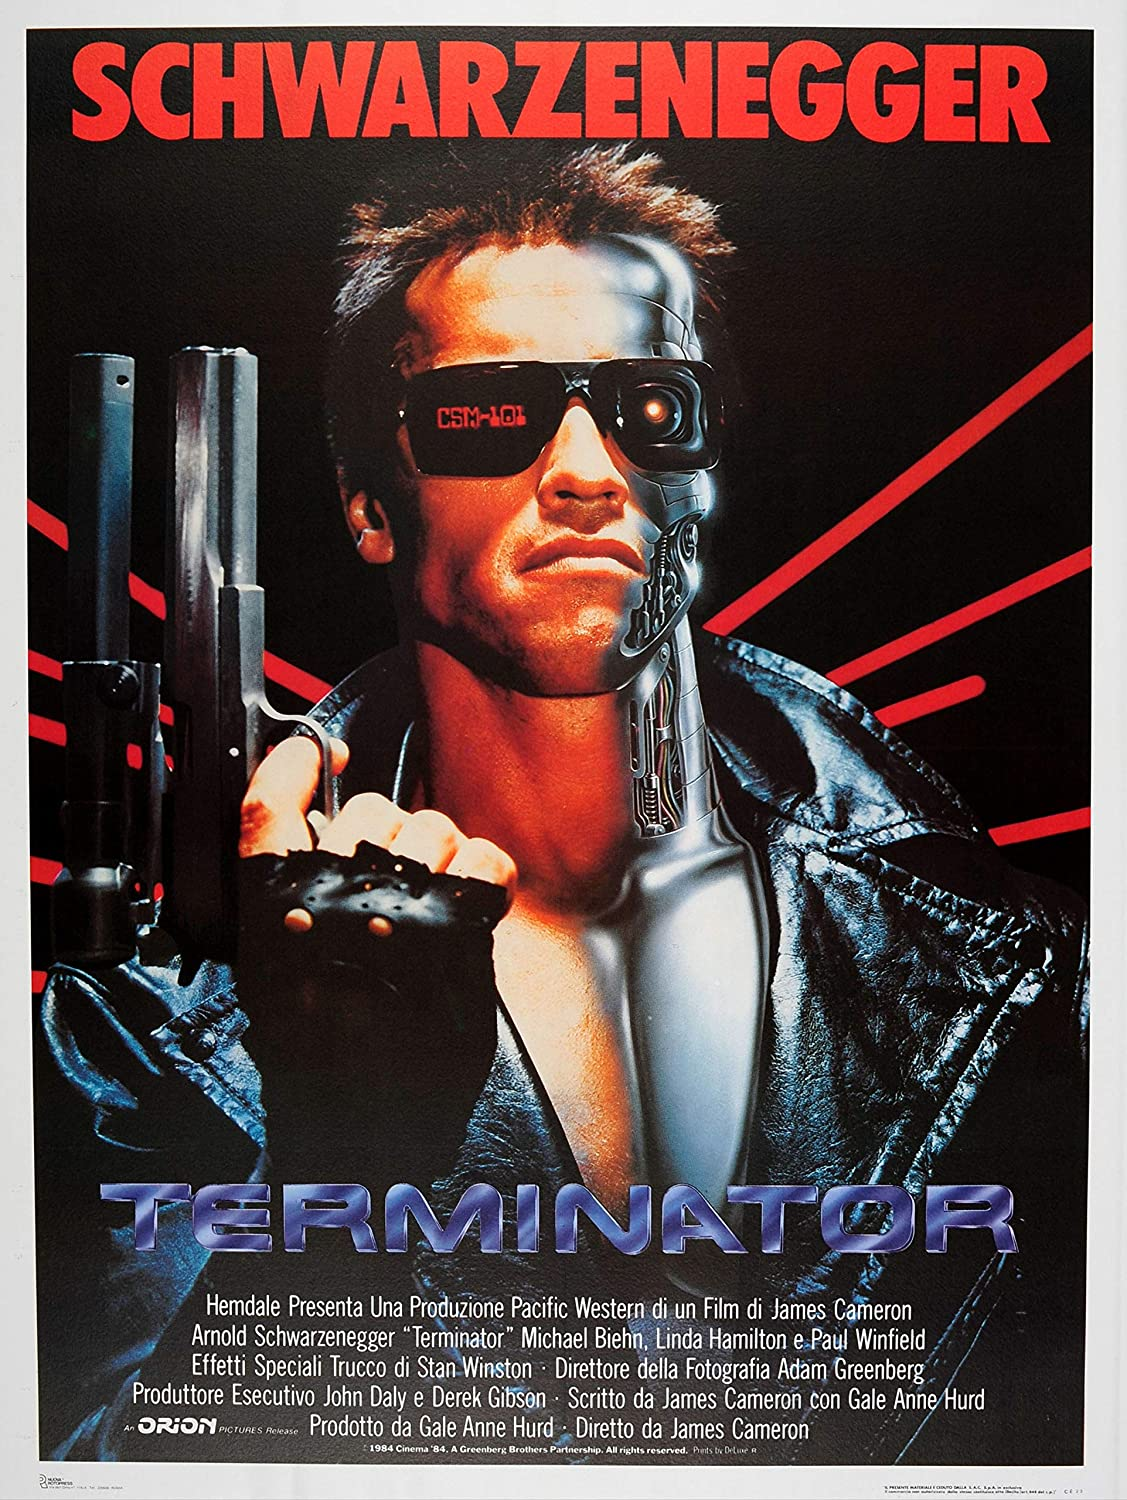 Art print POSTER CANVAS vintage terminator poster